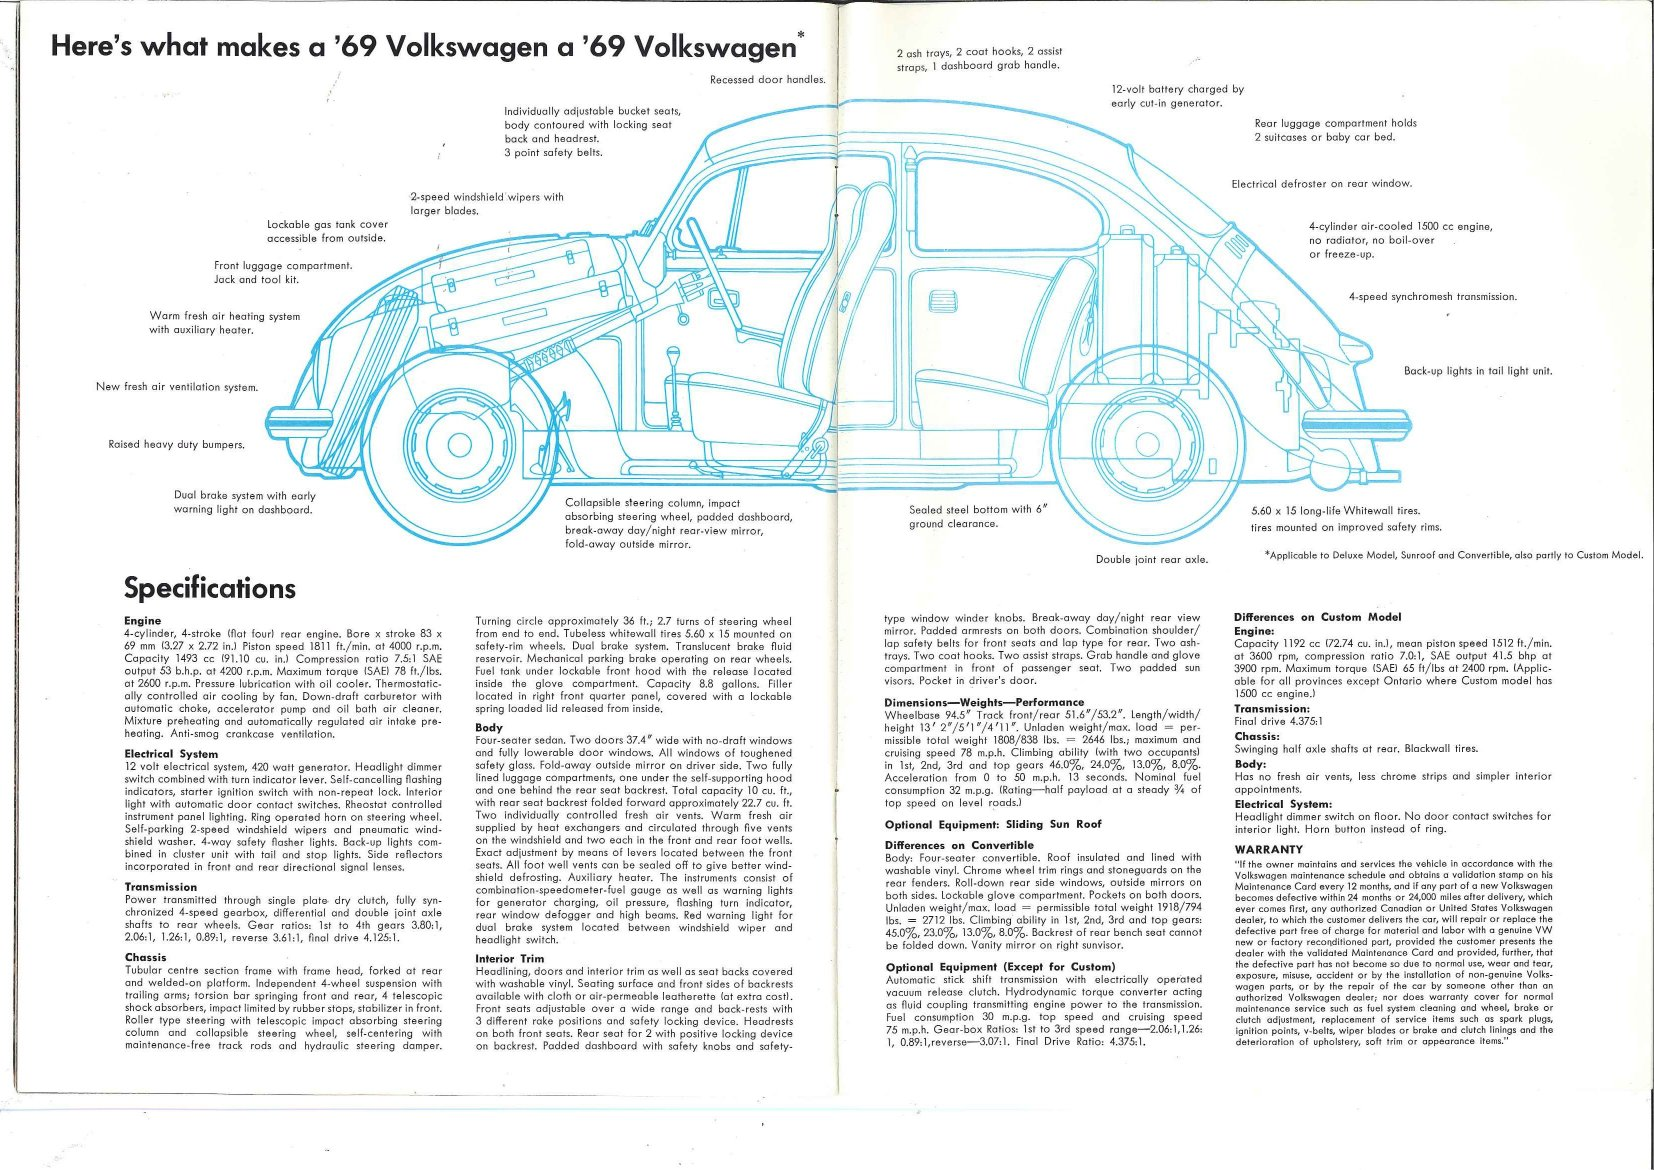 1969 vw beetle wiring diagram 2006 nissan maxima engine bug free image for user